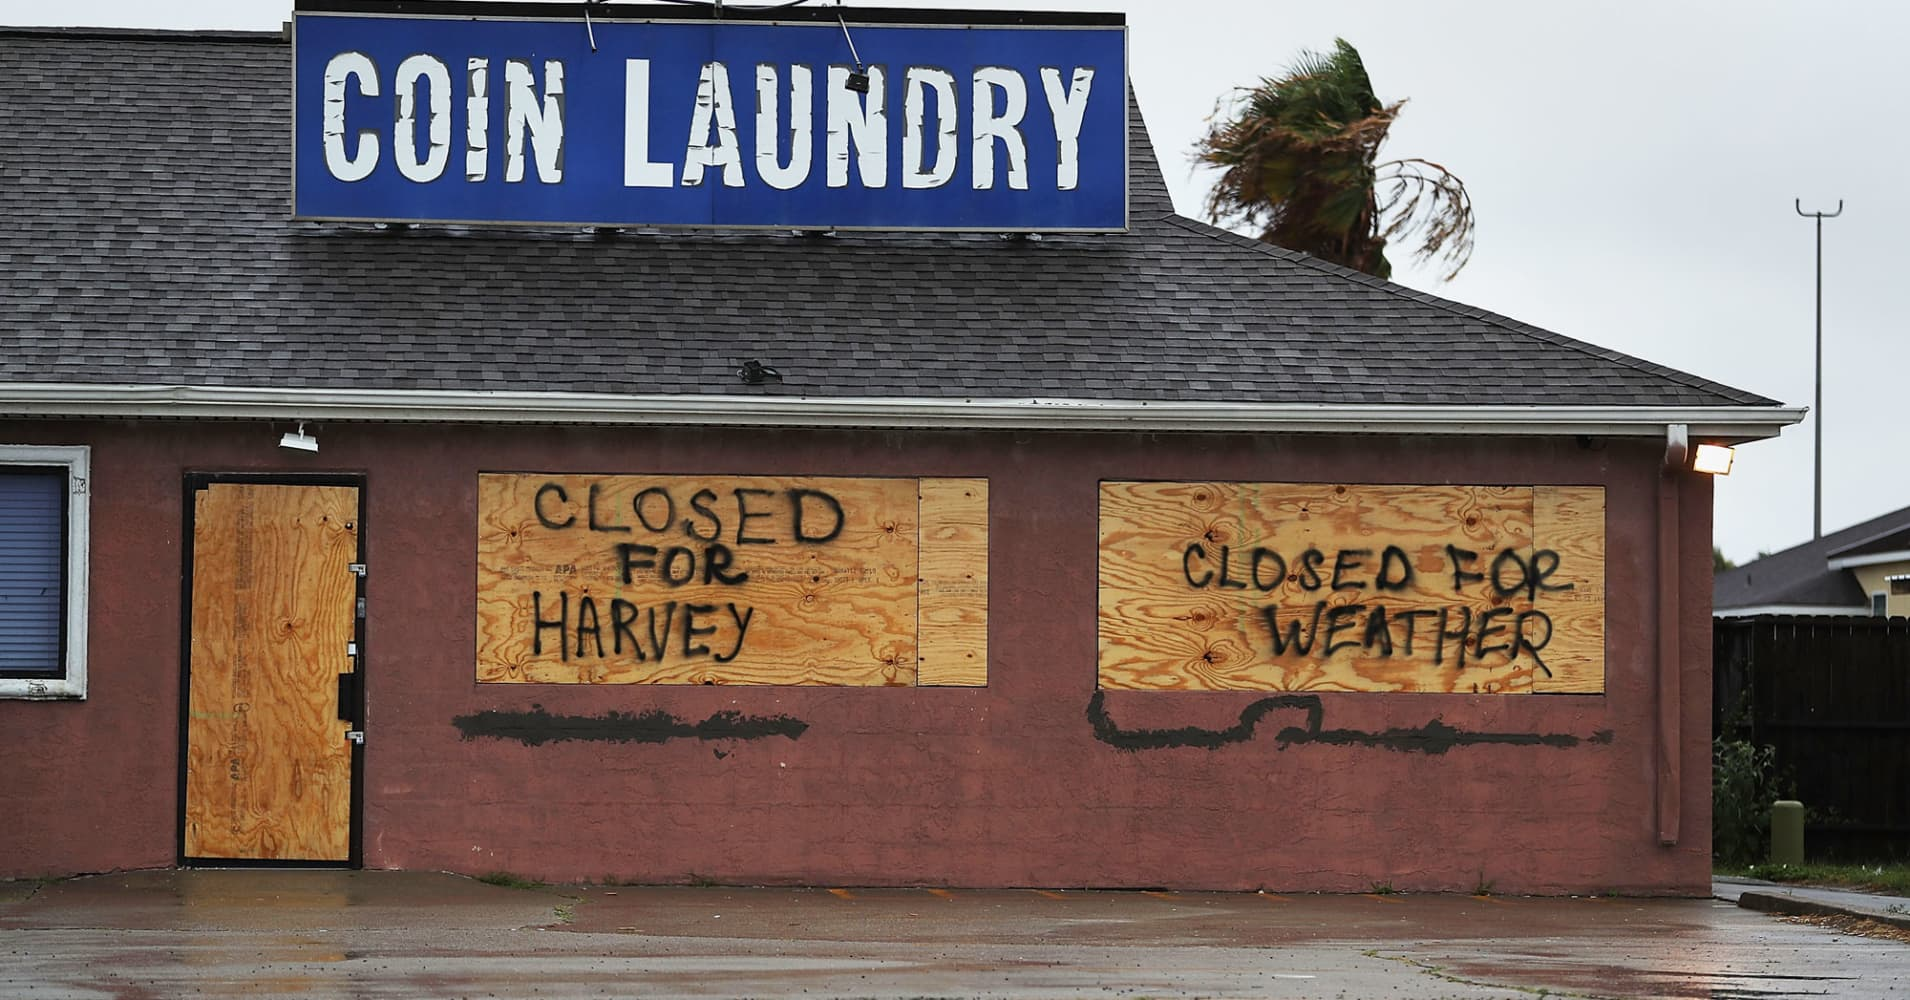 A sign on a business reads, 'Closed for Harvey', as people prepare for approaching Hurricane Harvey on August 25, 2017 in Corpus Christi, Texas.